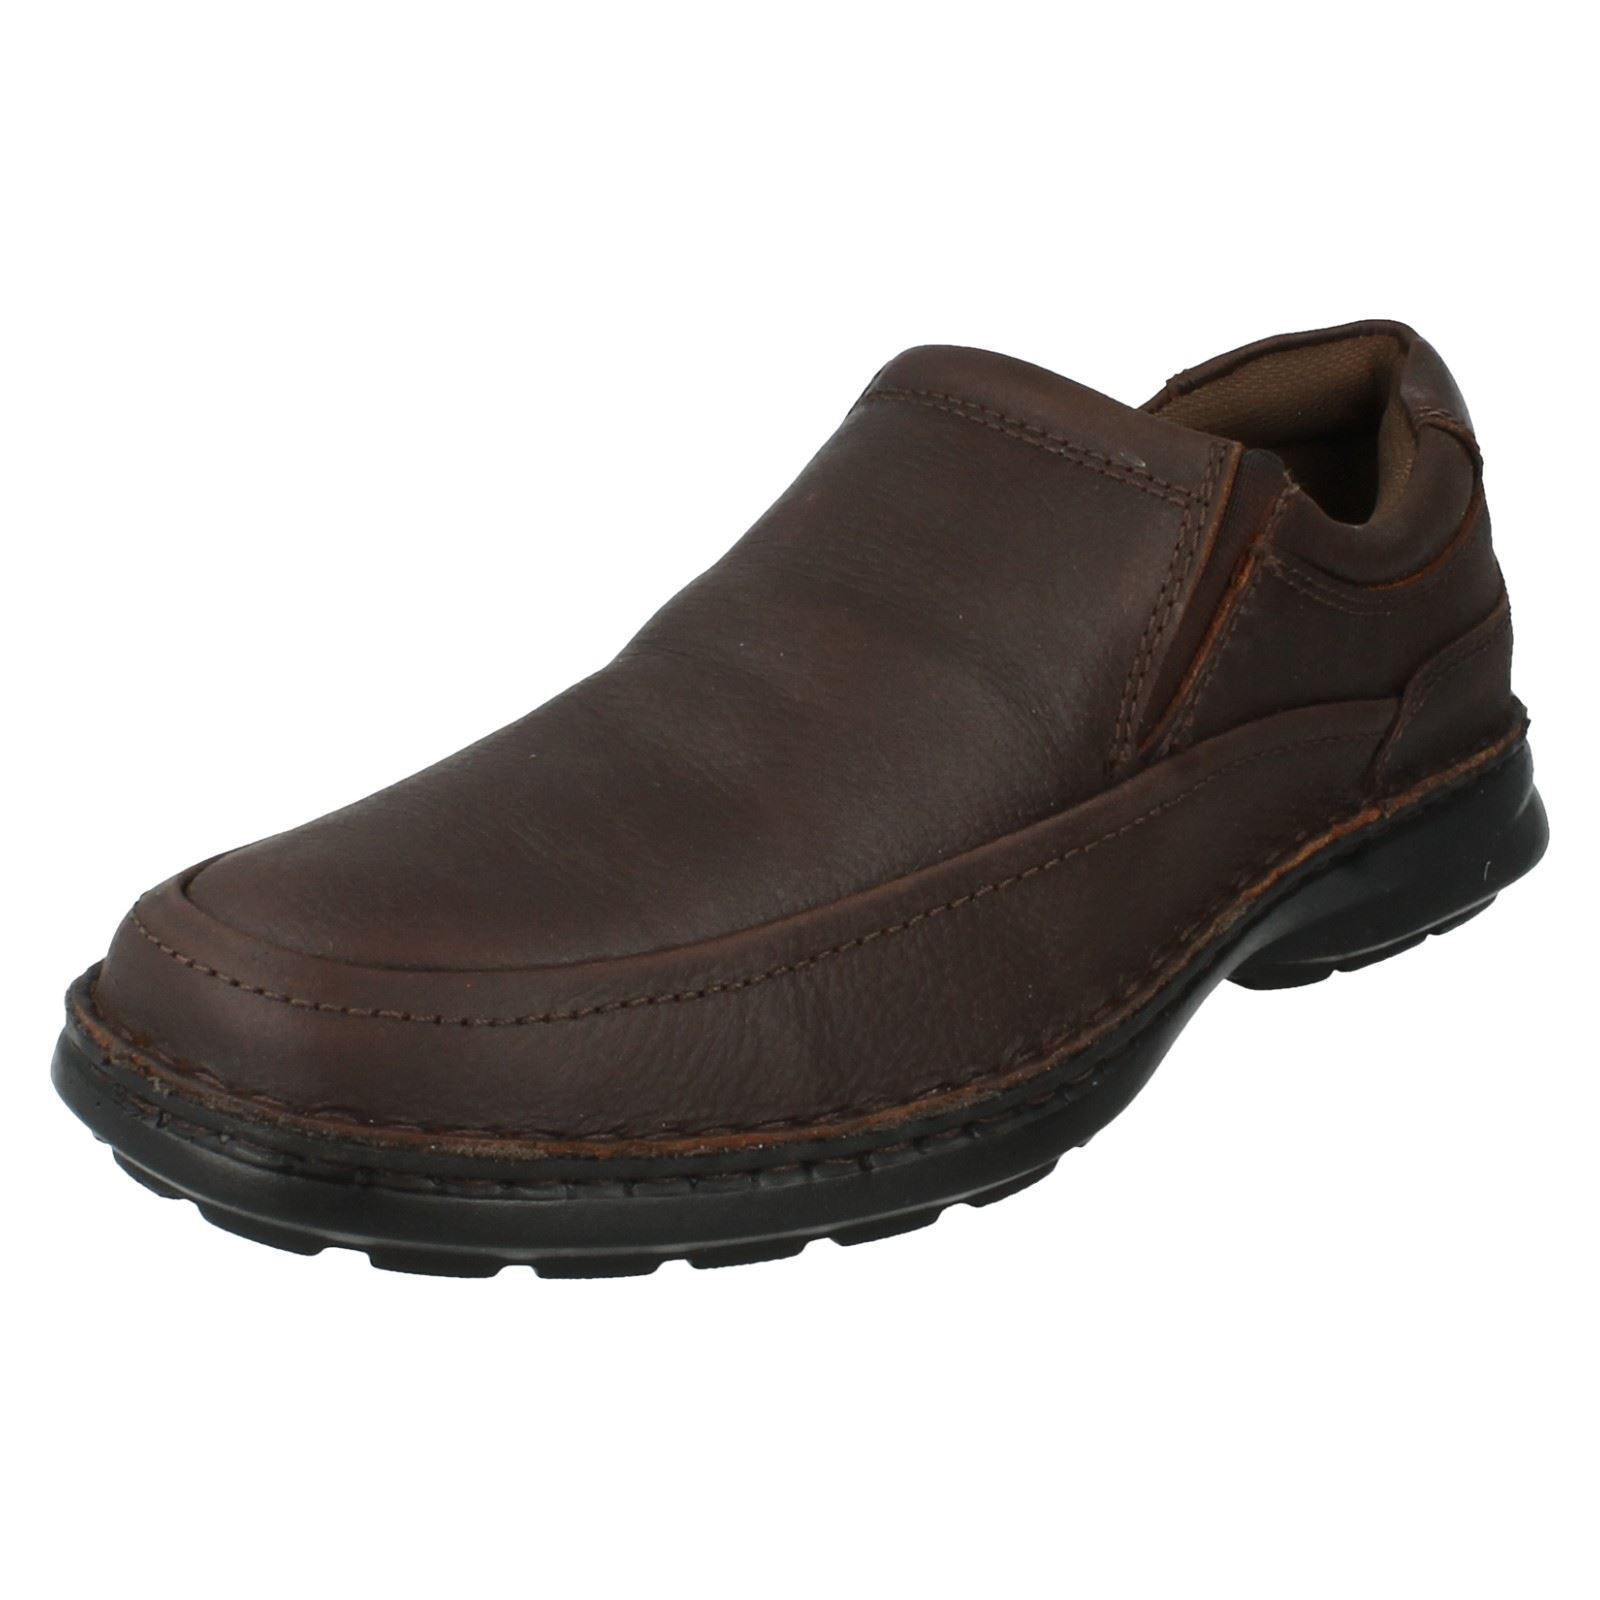 Easyflex 32009 Mens Brown Casual/Work Soft Leather Slip On Casual/Work Brown Shoes (R26B)(Kett) 4a39e1